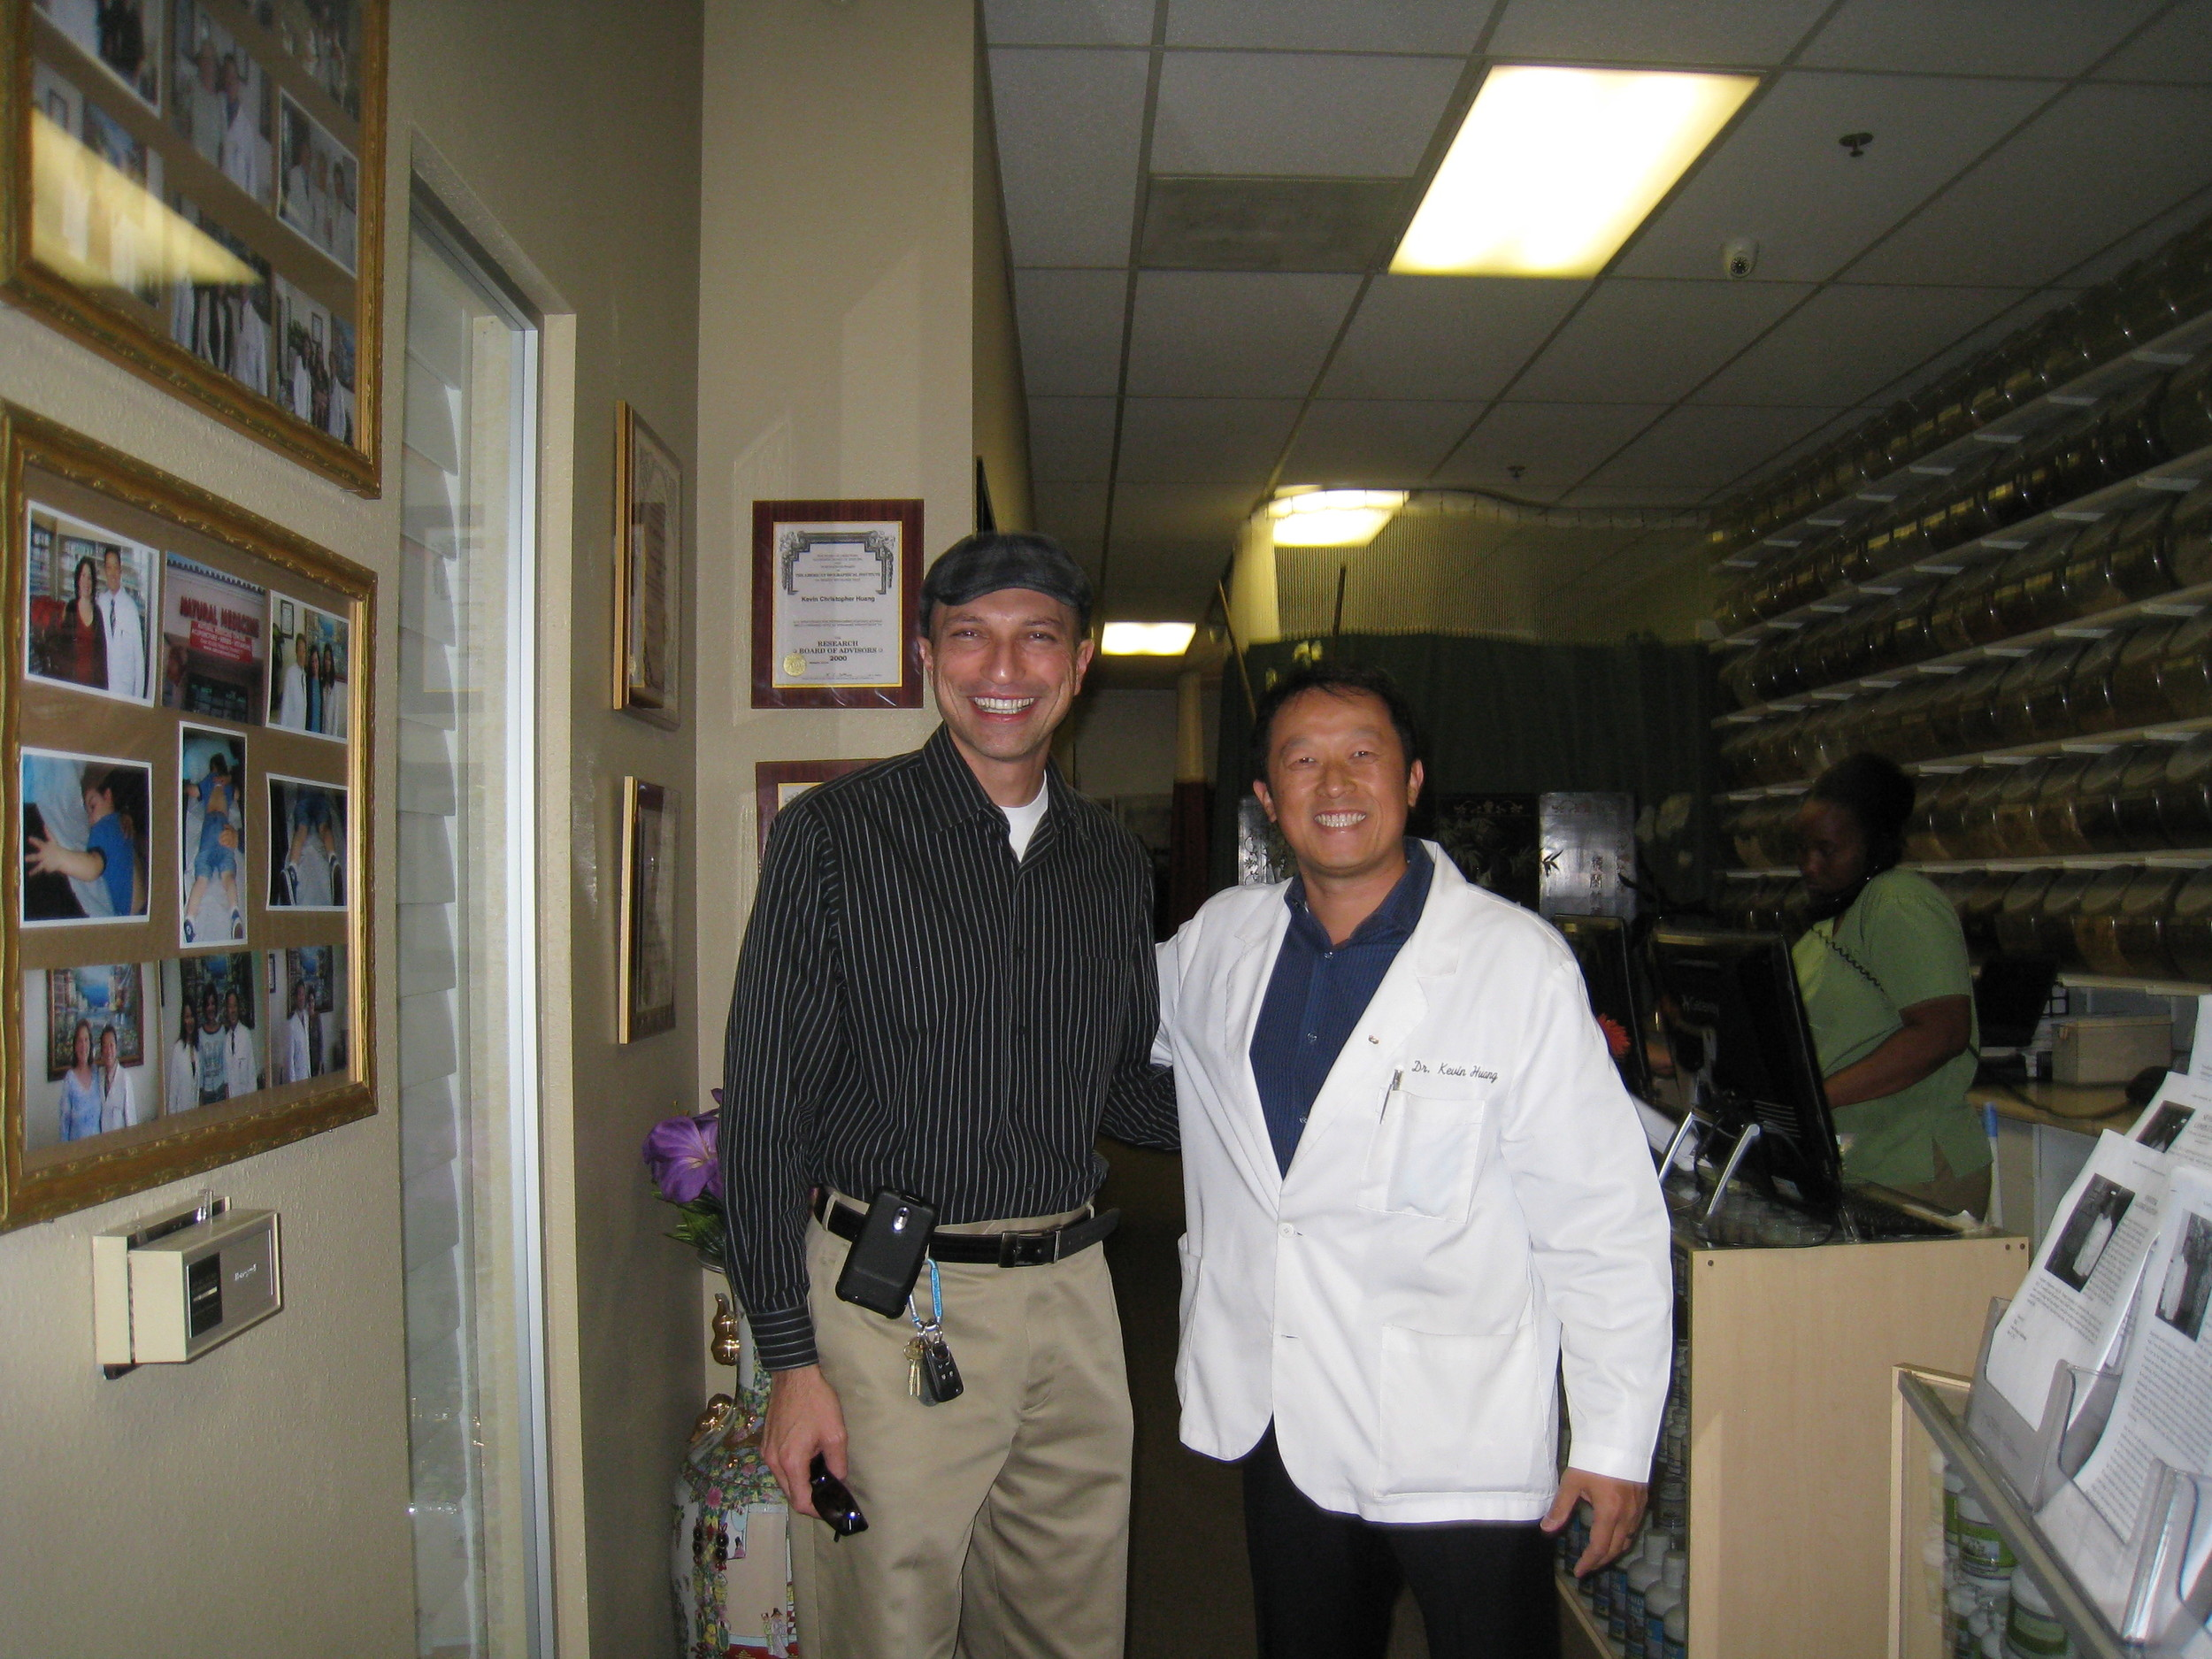 When I started my treatment with Dr. Kevin I stopped my cholesterol medicine. After 5 months of treatment I had a blood test and the results were absolutely amazing; my cholesterol levels had dropped to 177. I am 40 years old and have not had this low of a reading since I was 20 years old and in the best shape of my life. My immune system is working much better than it has in many years. I am enjoying good health and not taking all of the medications I used to take. Praise be to Jesus! I can't stop thanking God for bringing this Godly doctor into my life.